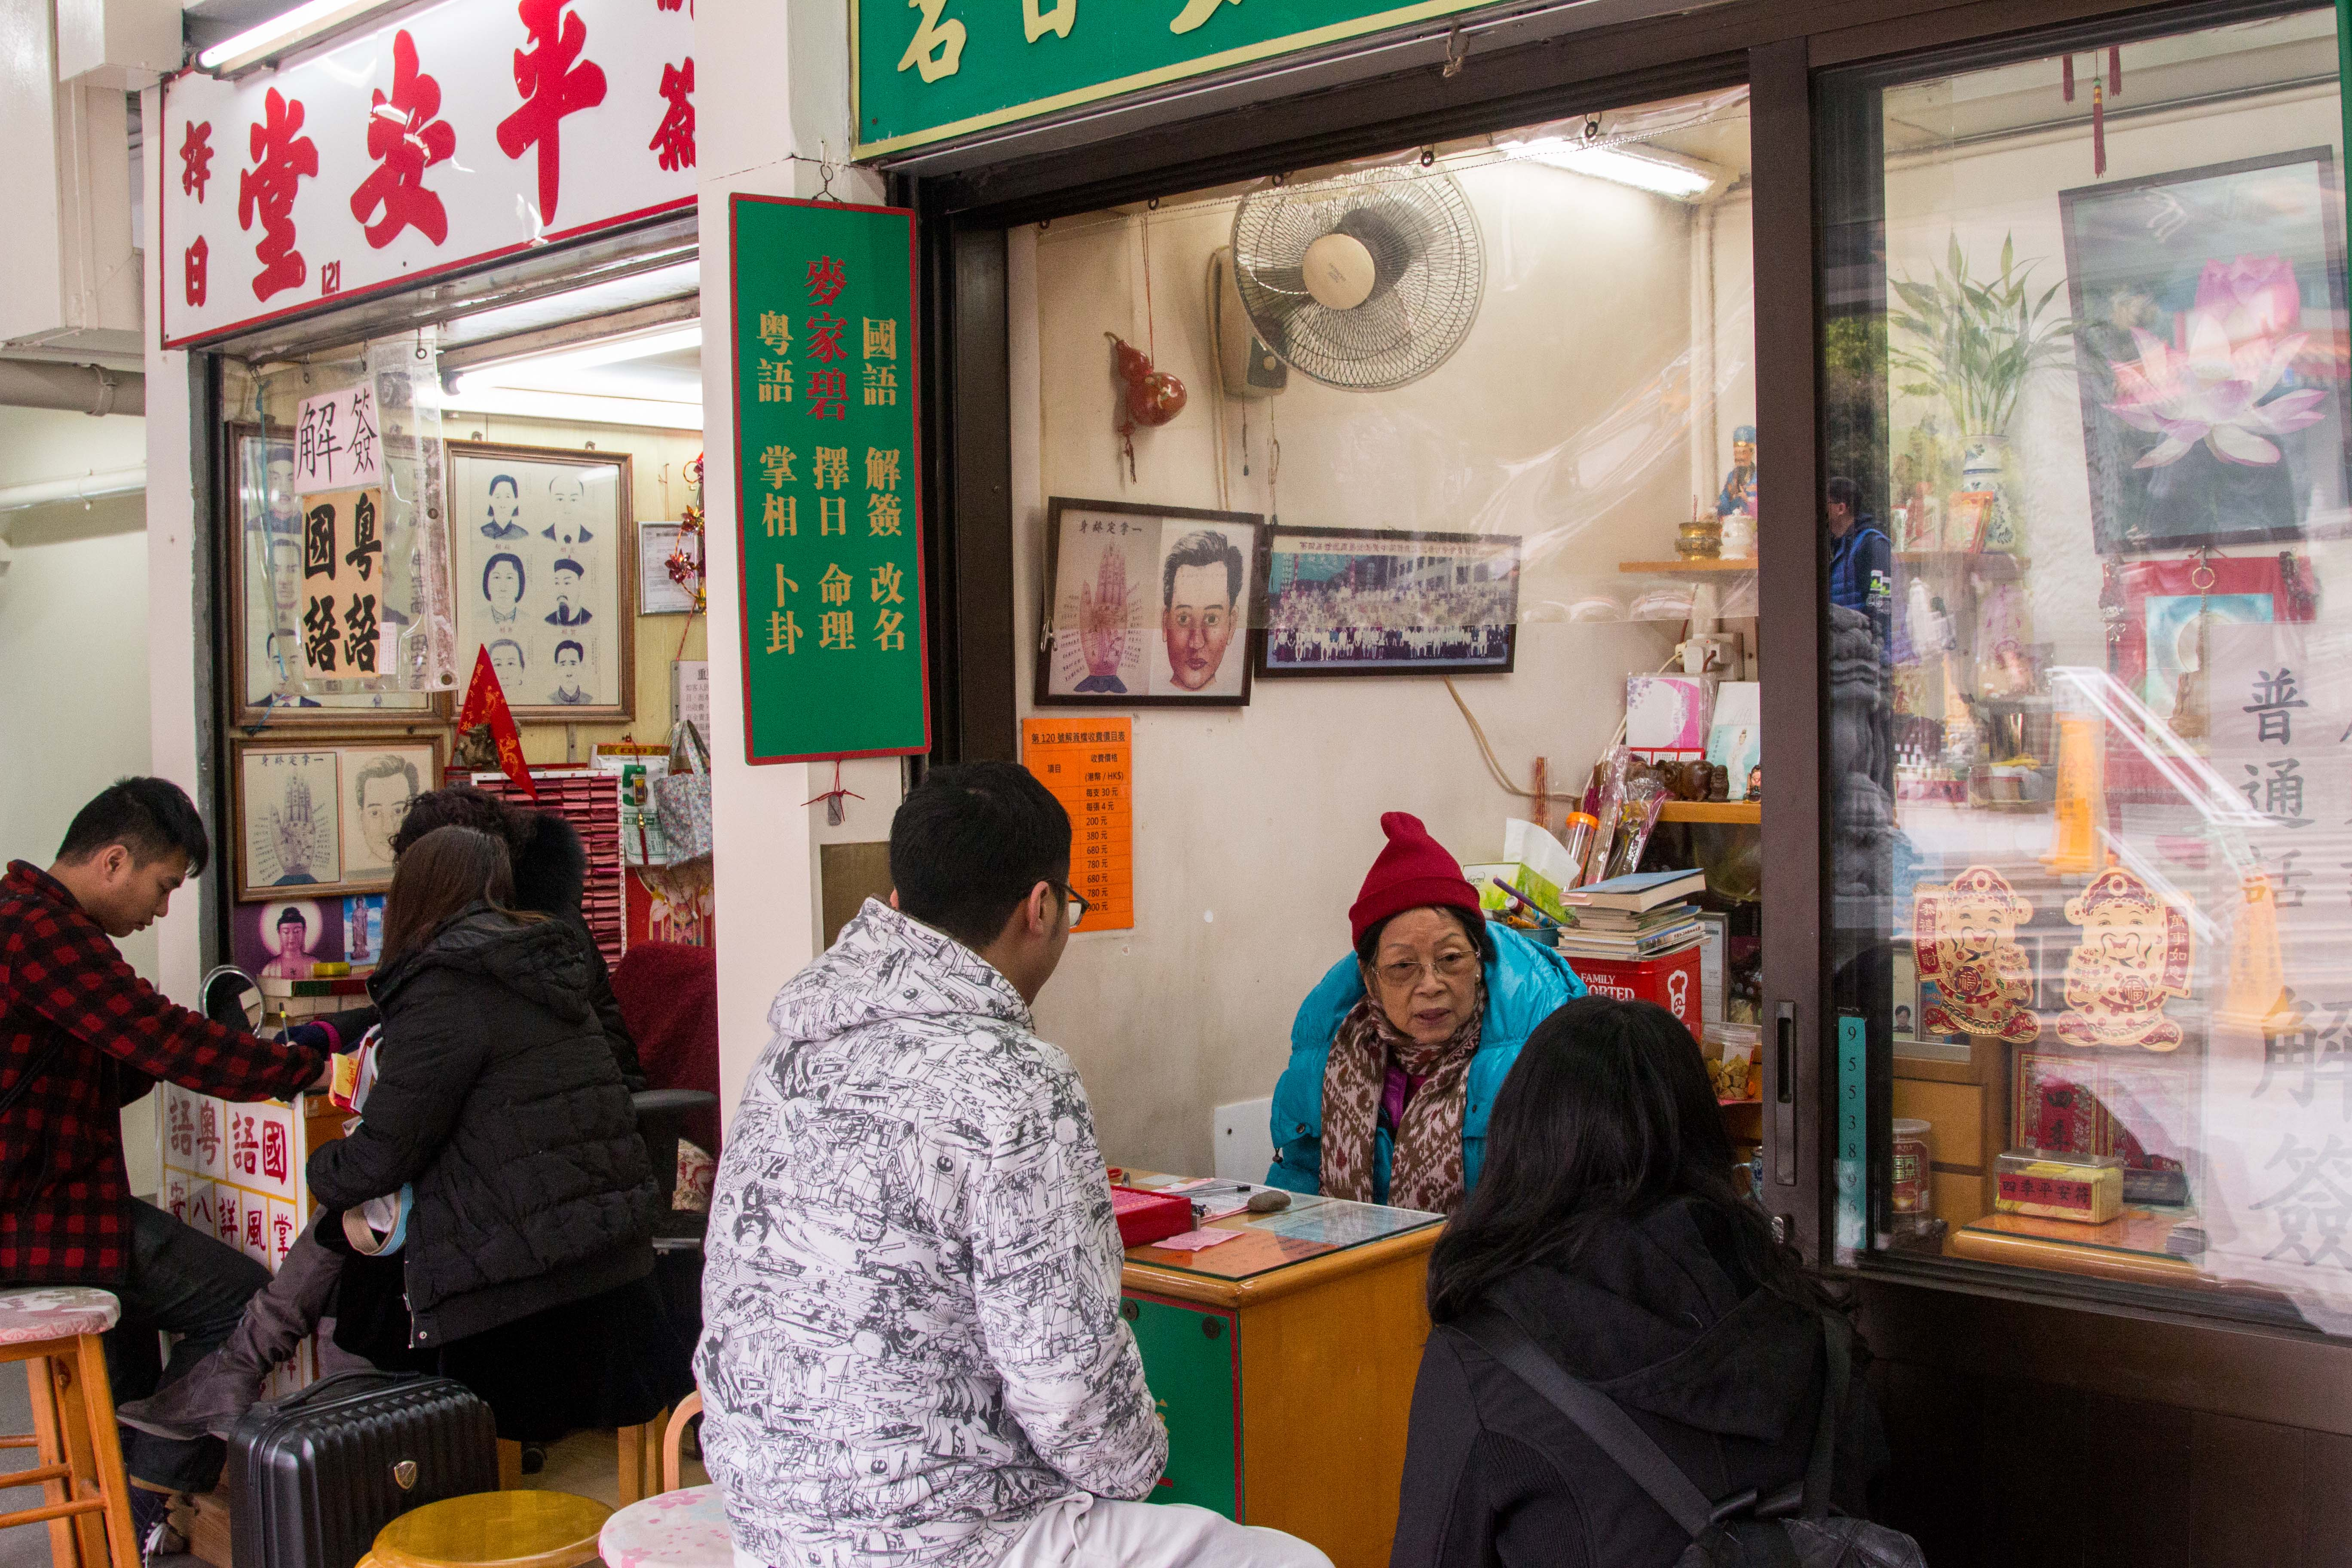 The temple hosts a wing of traditional fortune tellers, who will interpret your fortune for a small fee.